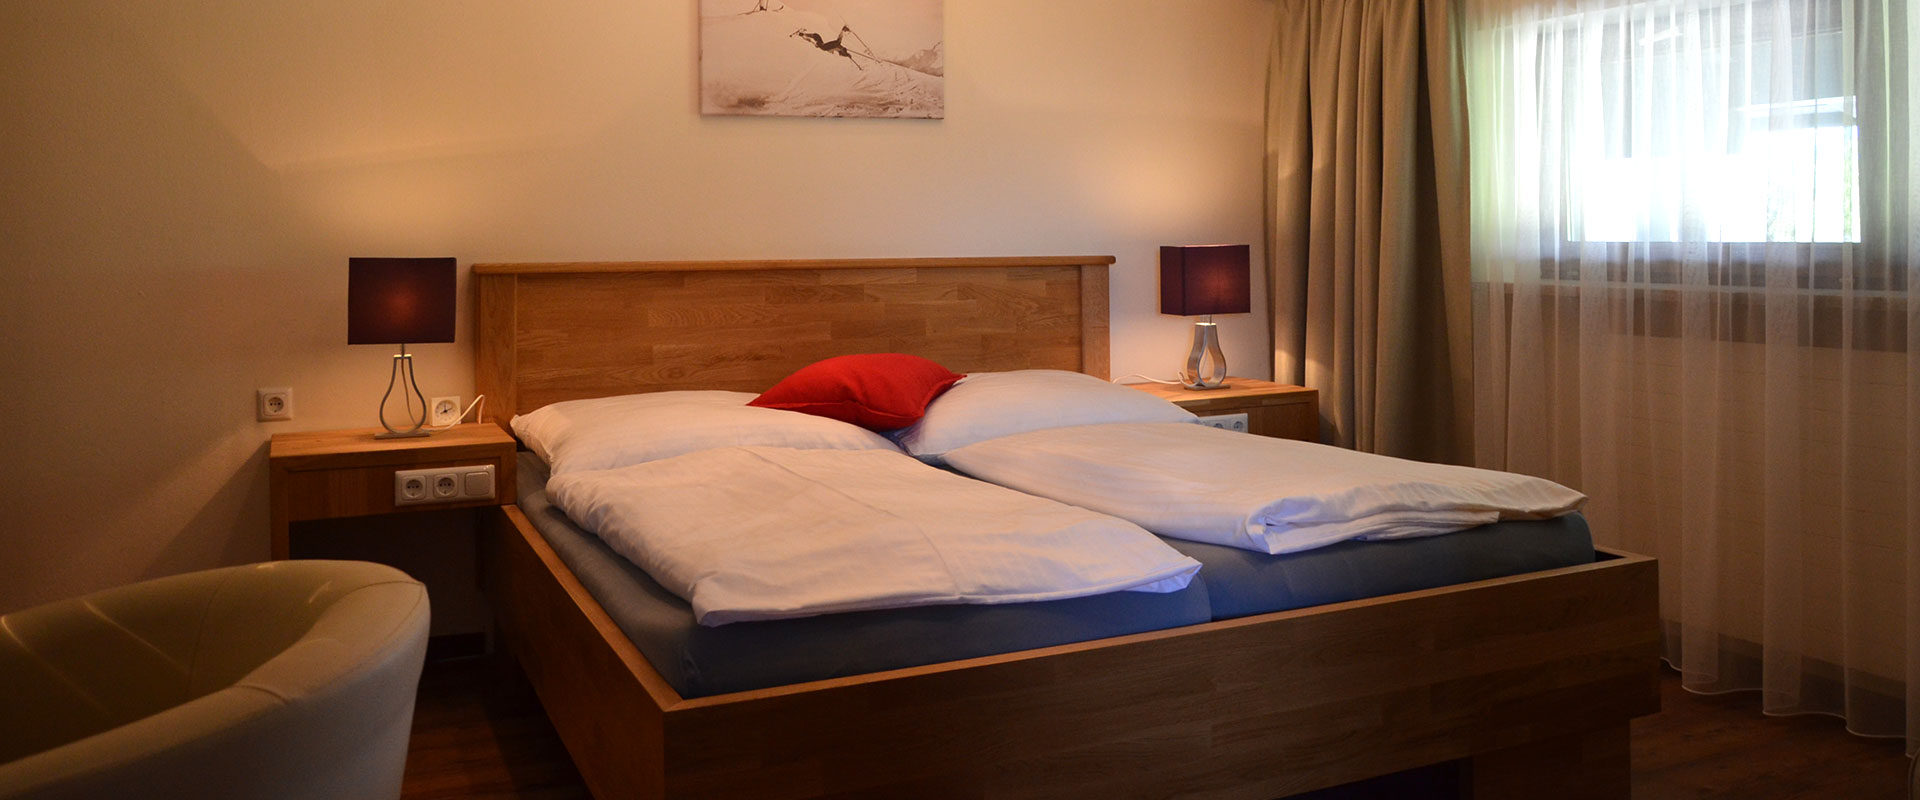 Hotel & Suites Zell am See